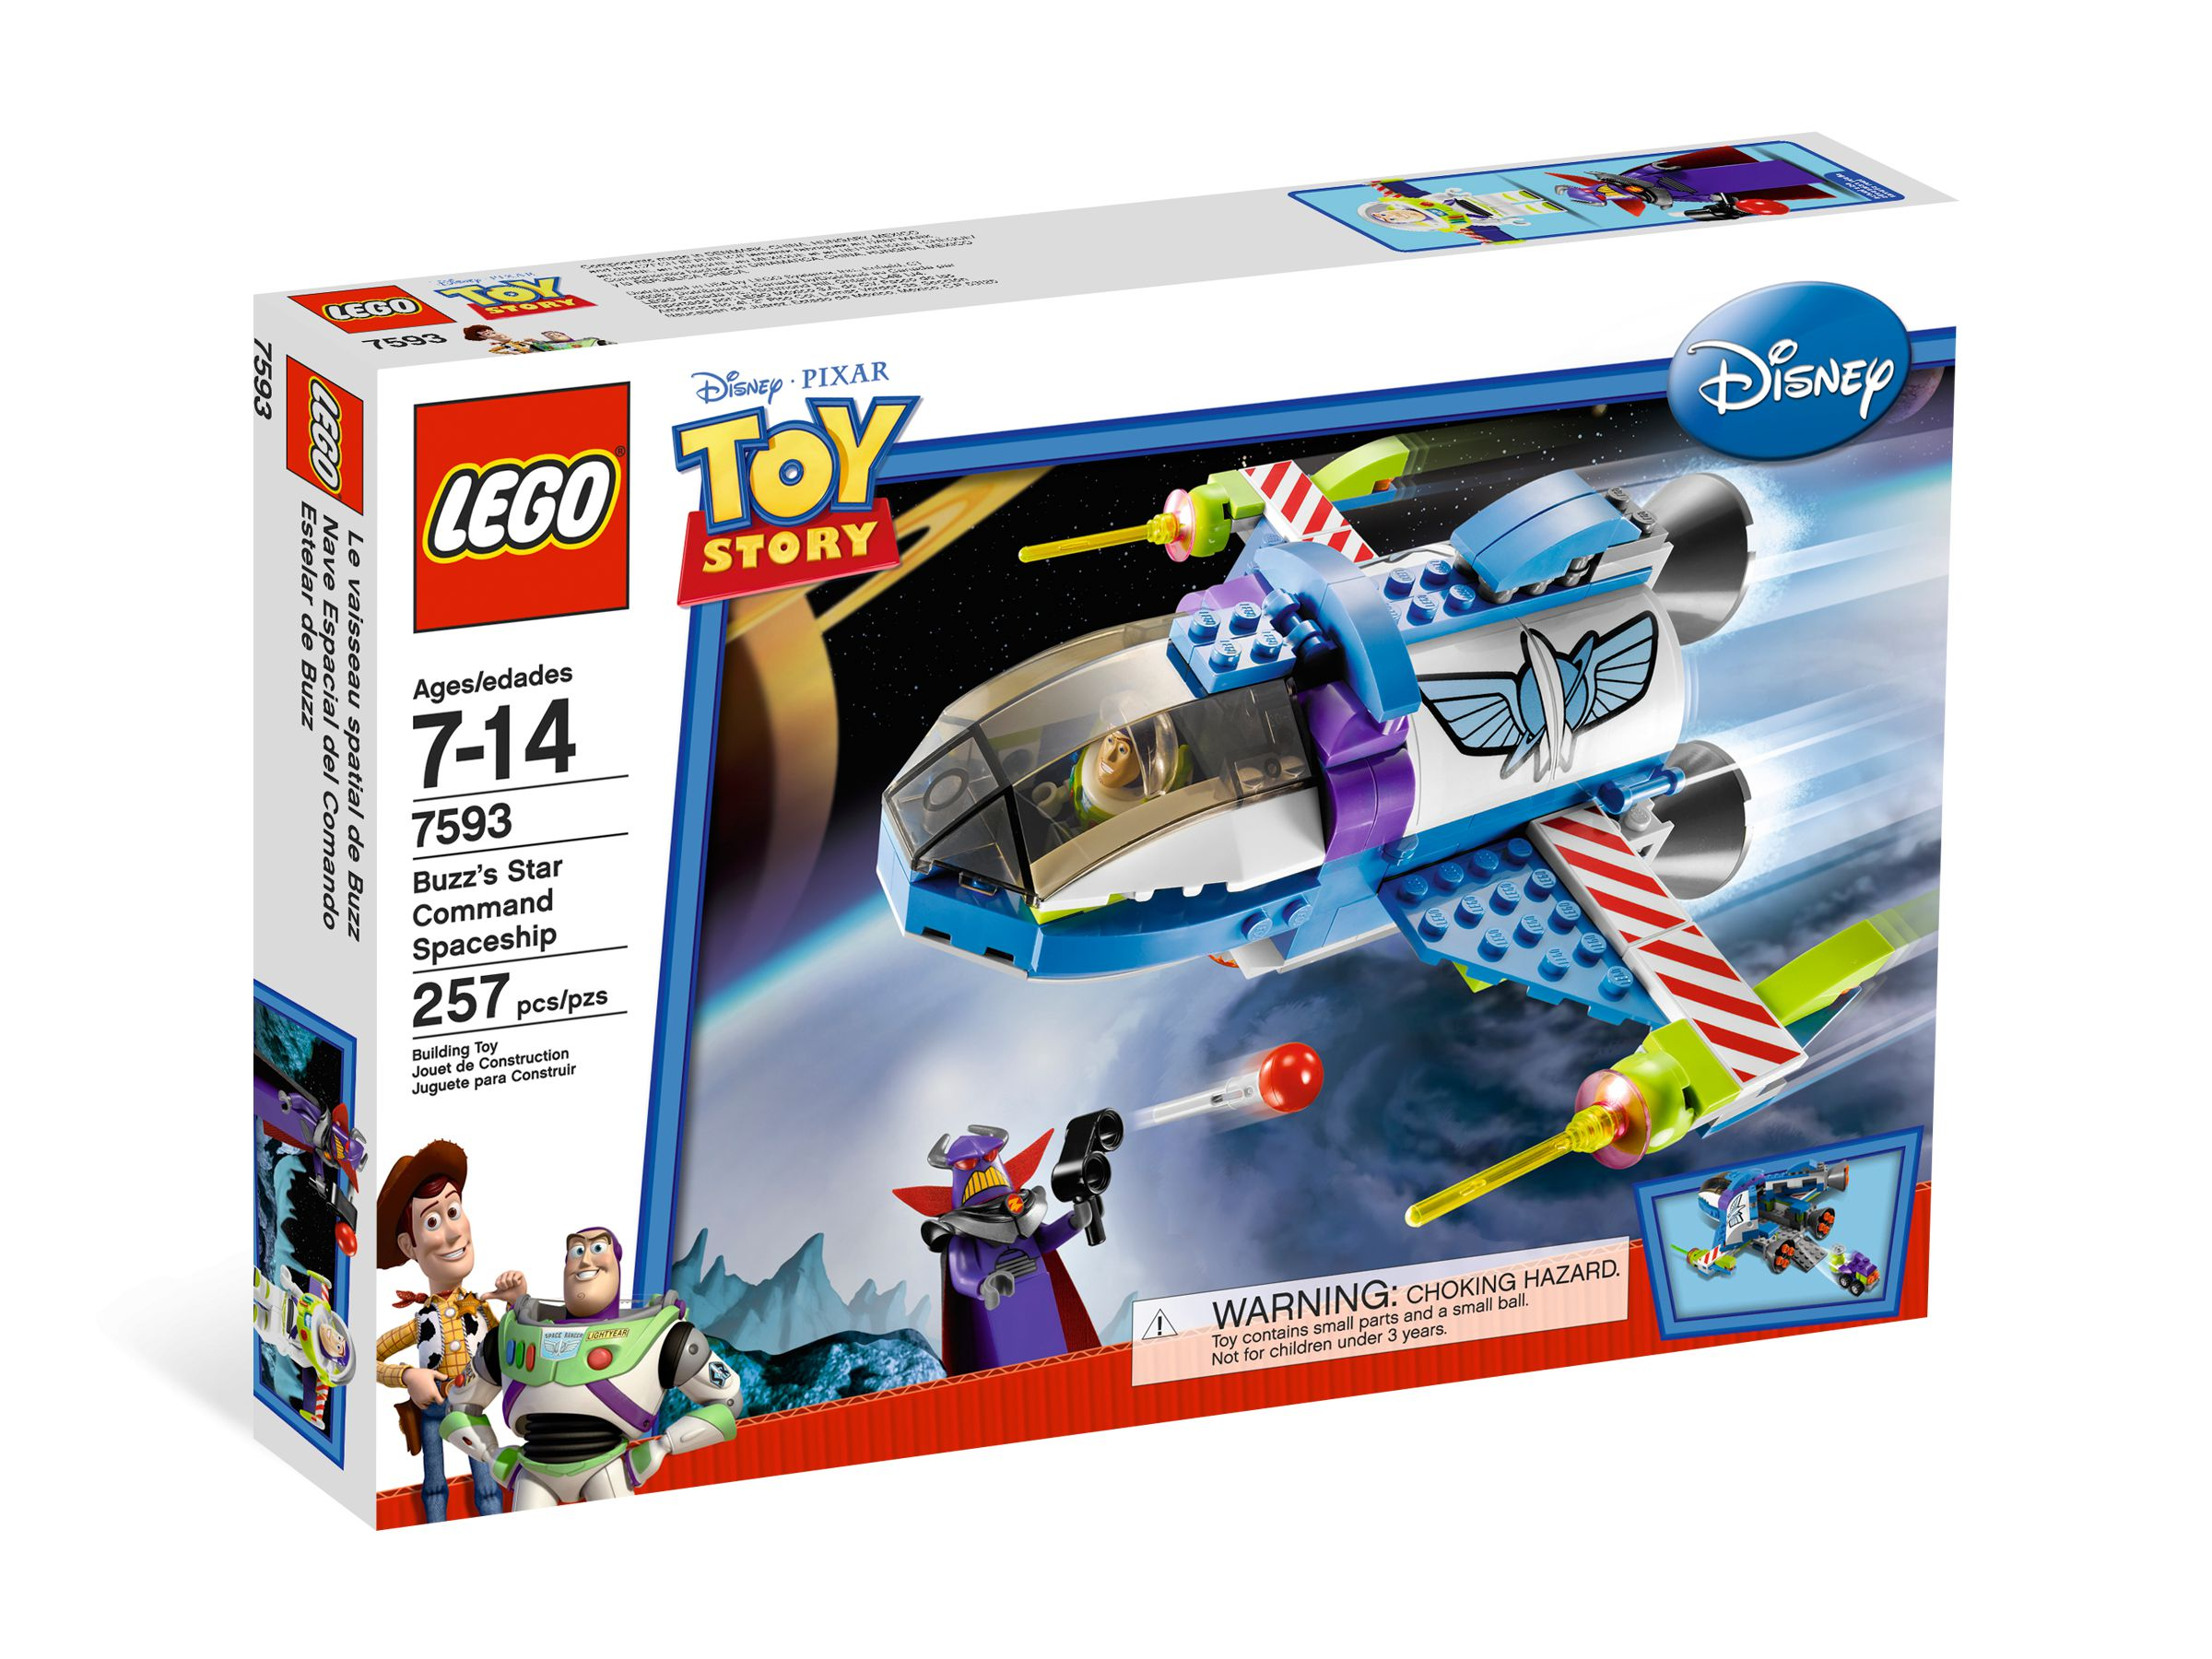 LEGO Toy Story 7593 Buzz's Star Command Spaceship LEGO_7593_alt1.jpg